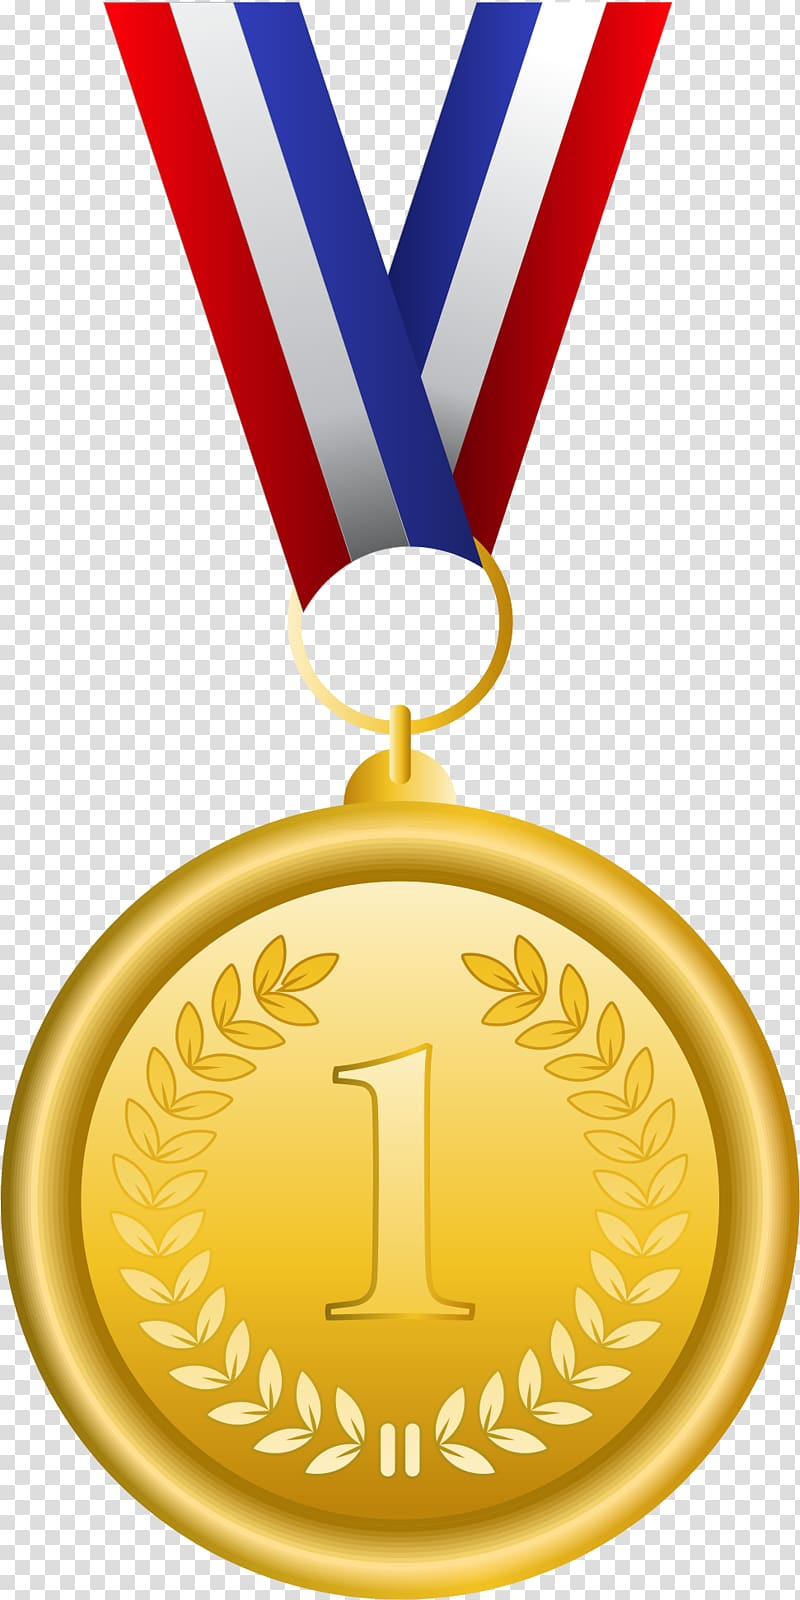 Olympics clipart gold medallion. Medal olympic bronze elements